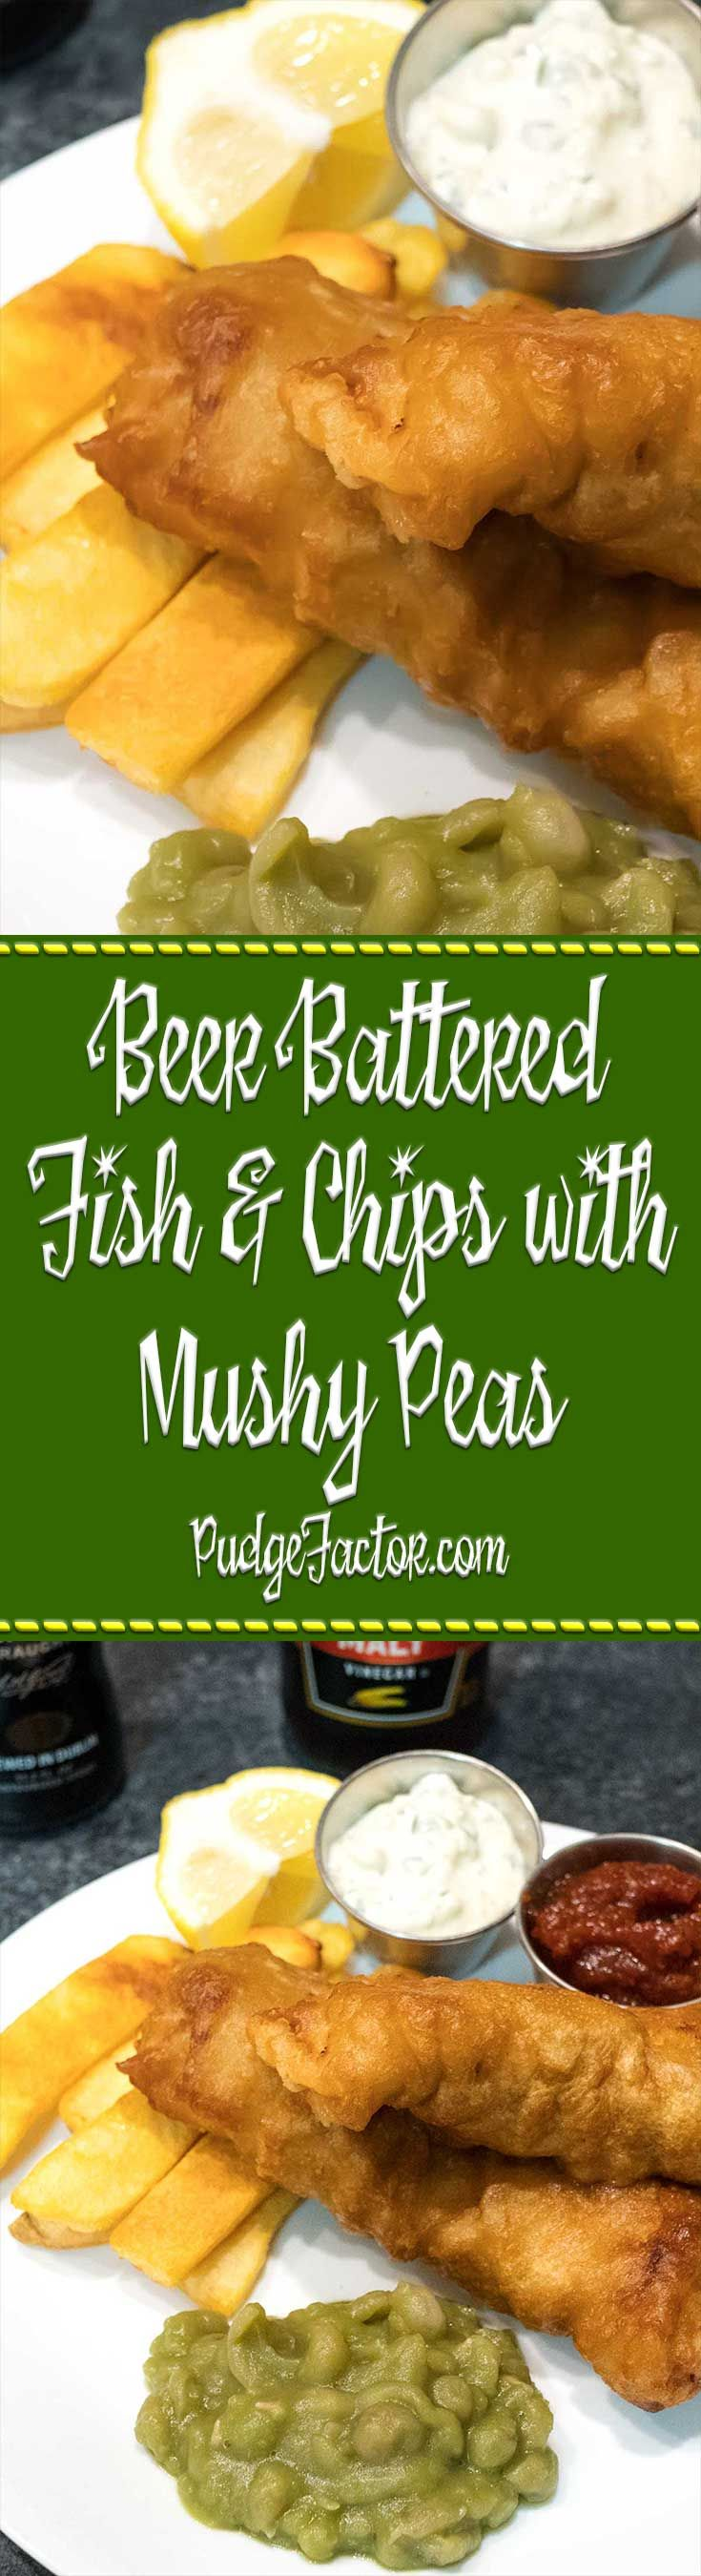 Beer Battered Fish and Chips with Mushy peas is a favorite pub meal. Add homemade tartar sauce, and you have a true winner!  via @c2king